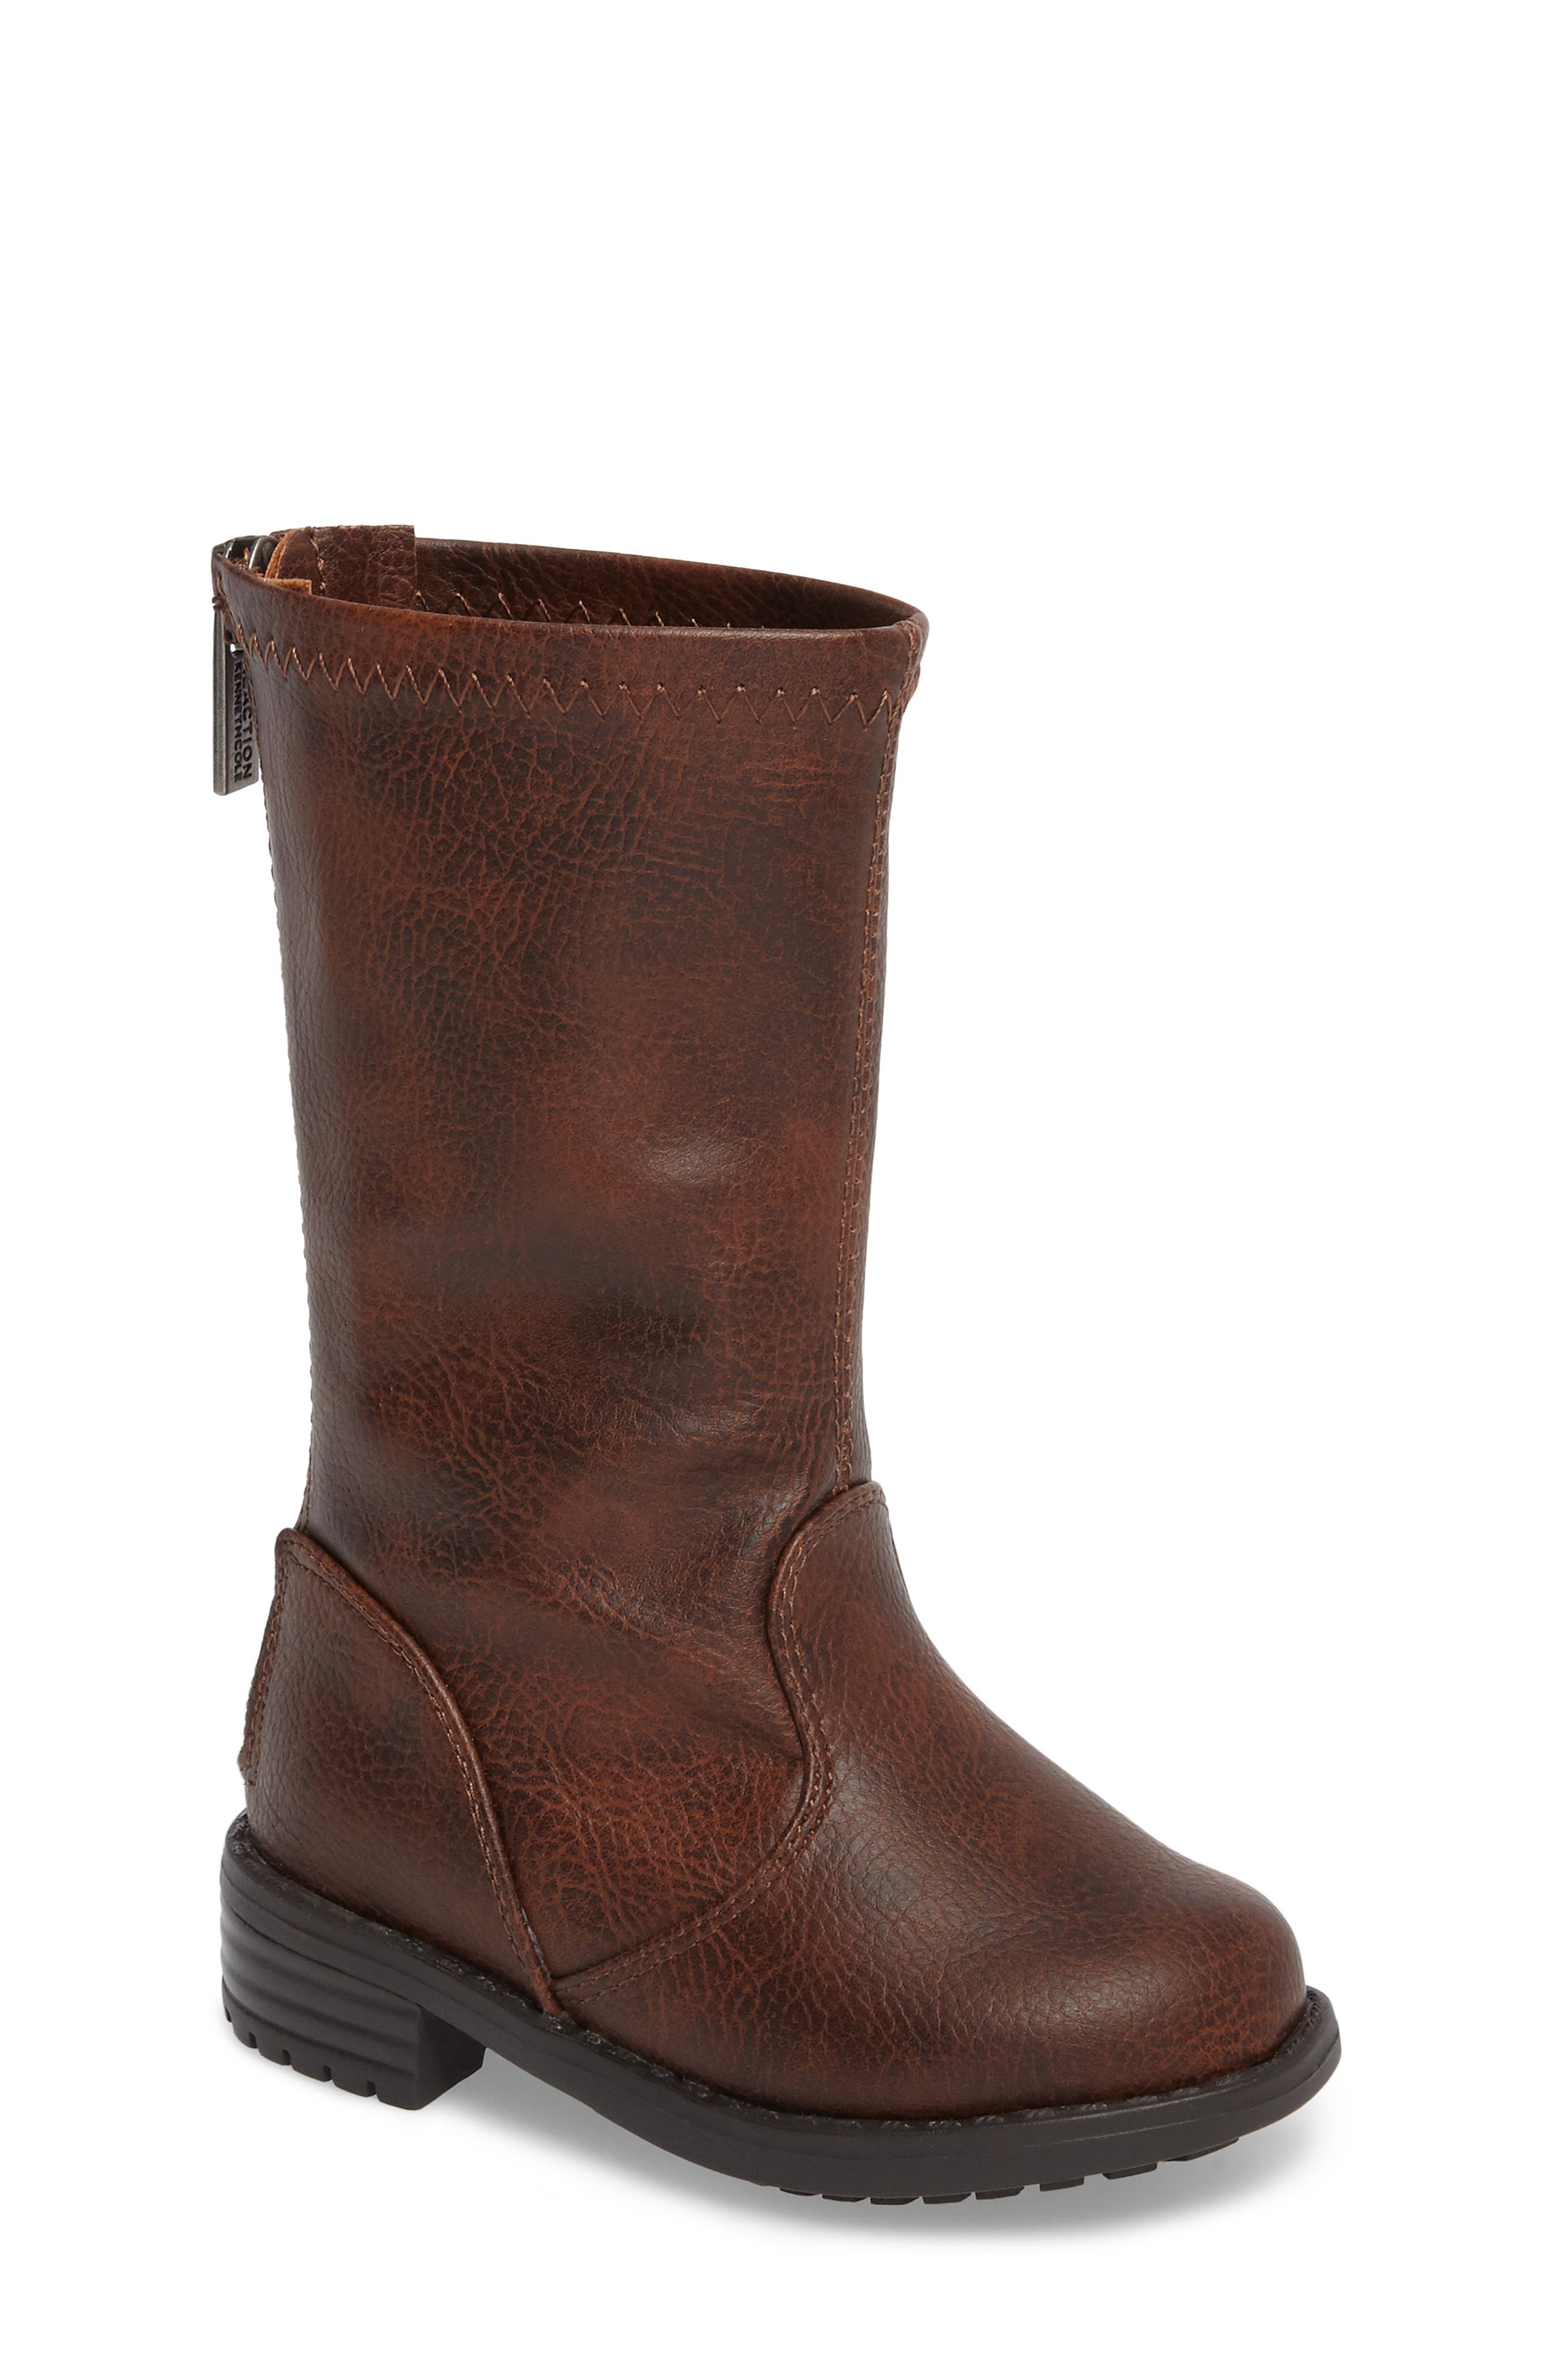 Autumn Stretch Boot,                             Main thumbnail 1, color,                             Distressed Brown Faux Leather